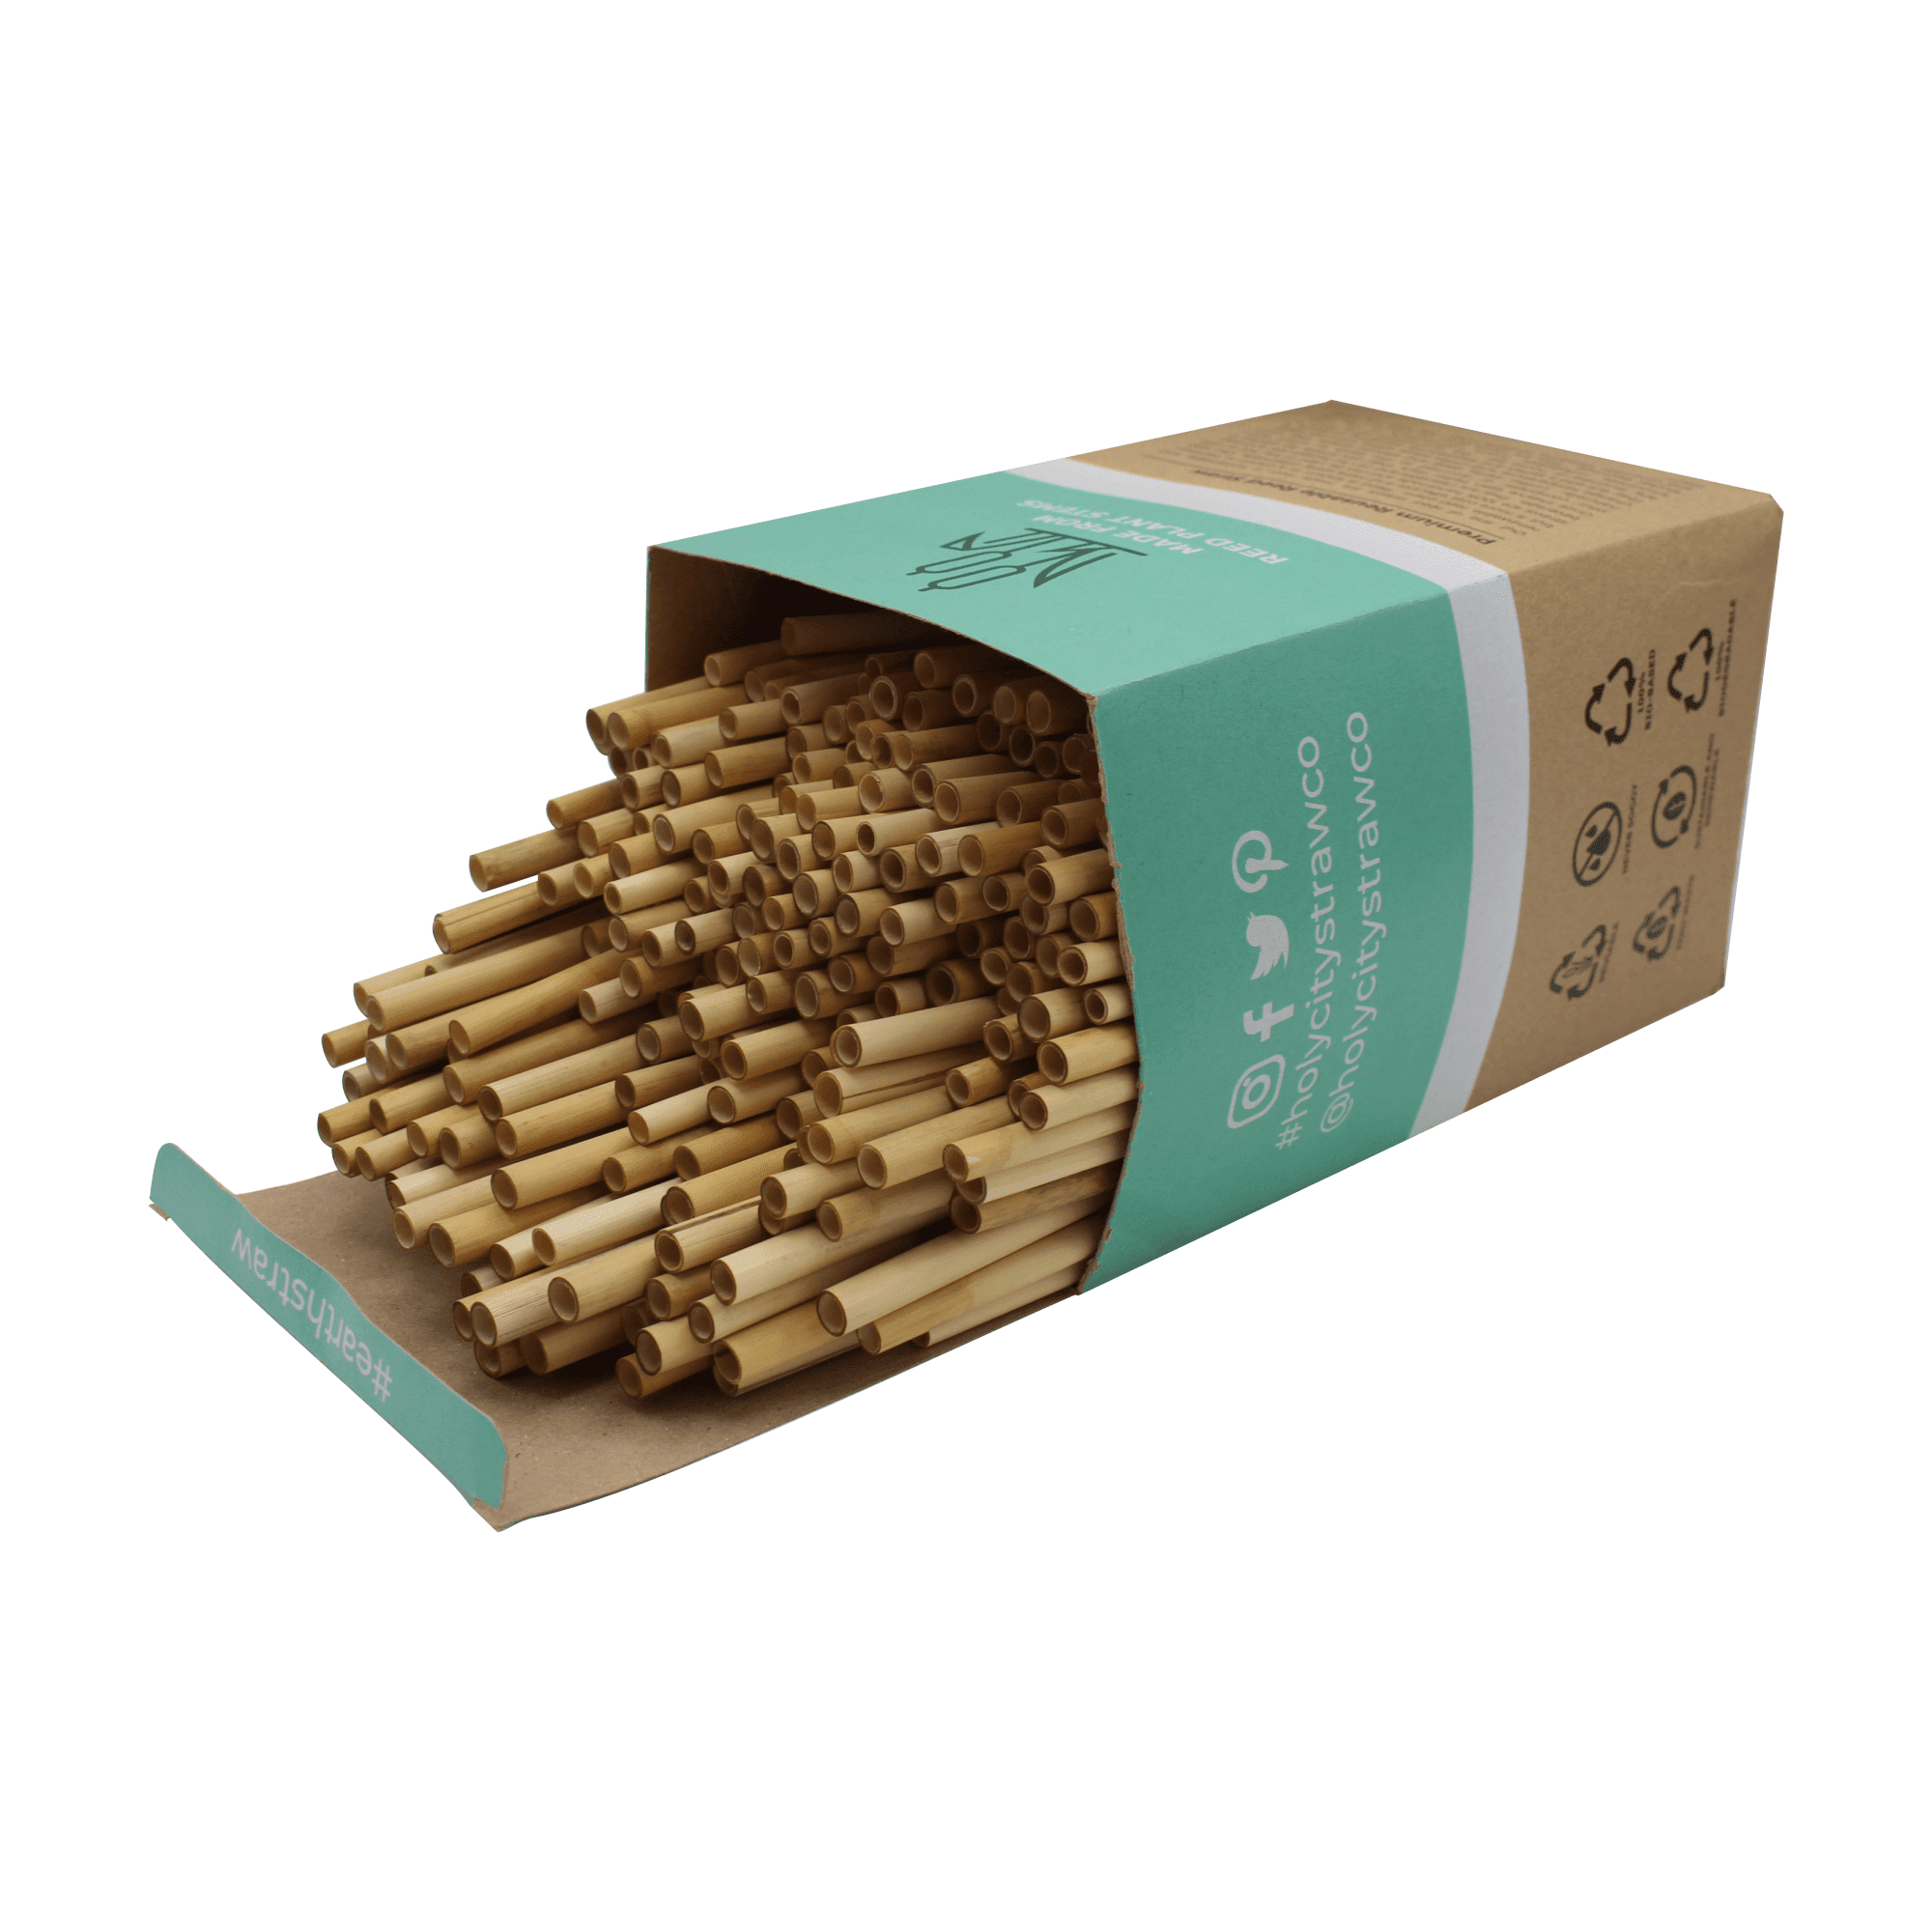 250 count box of Holy City Straw Company Reed Straws open with straws.